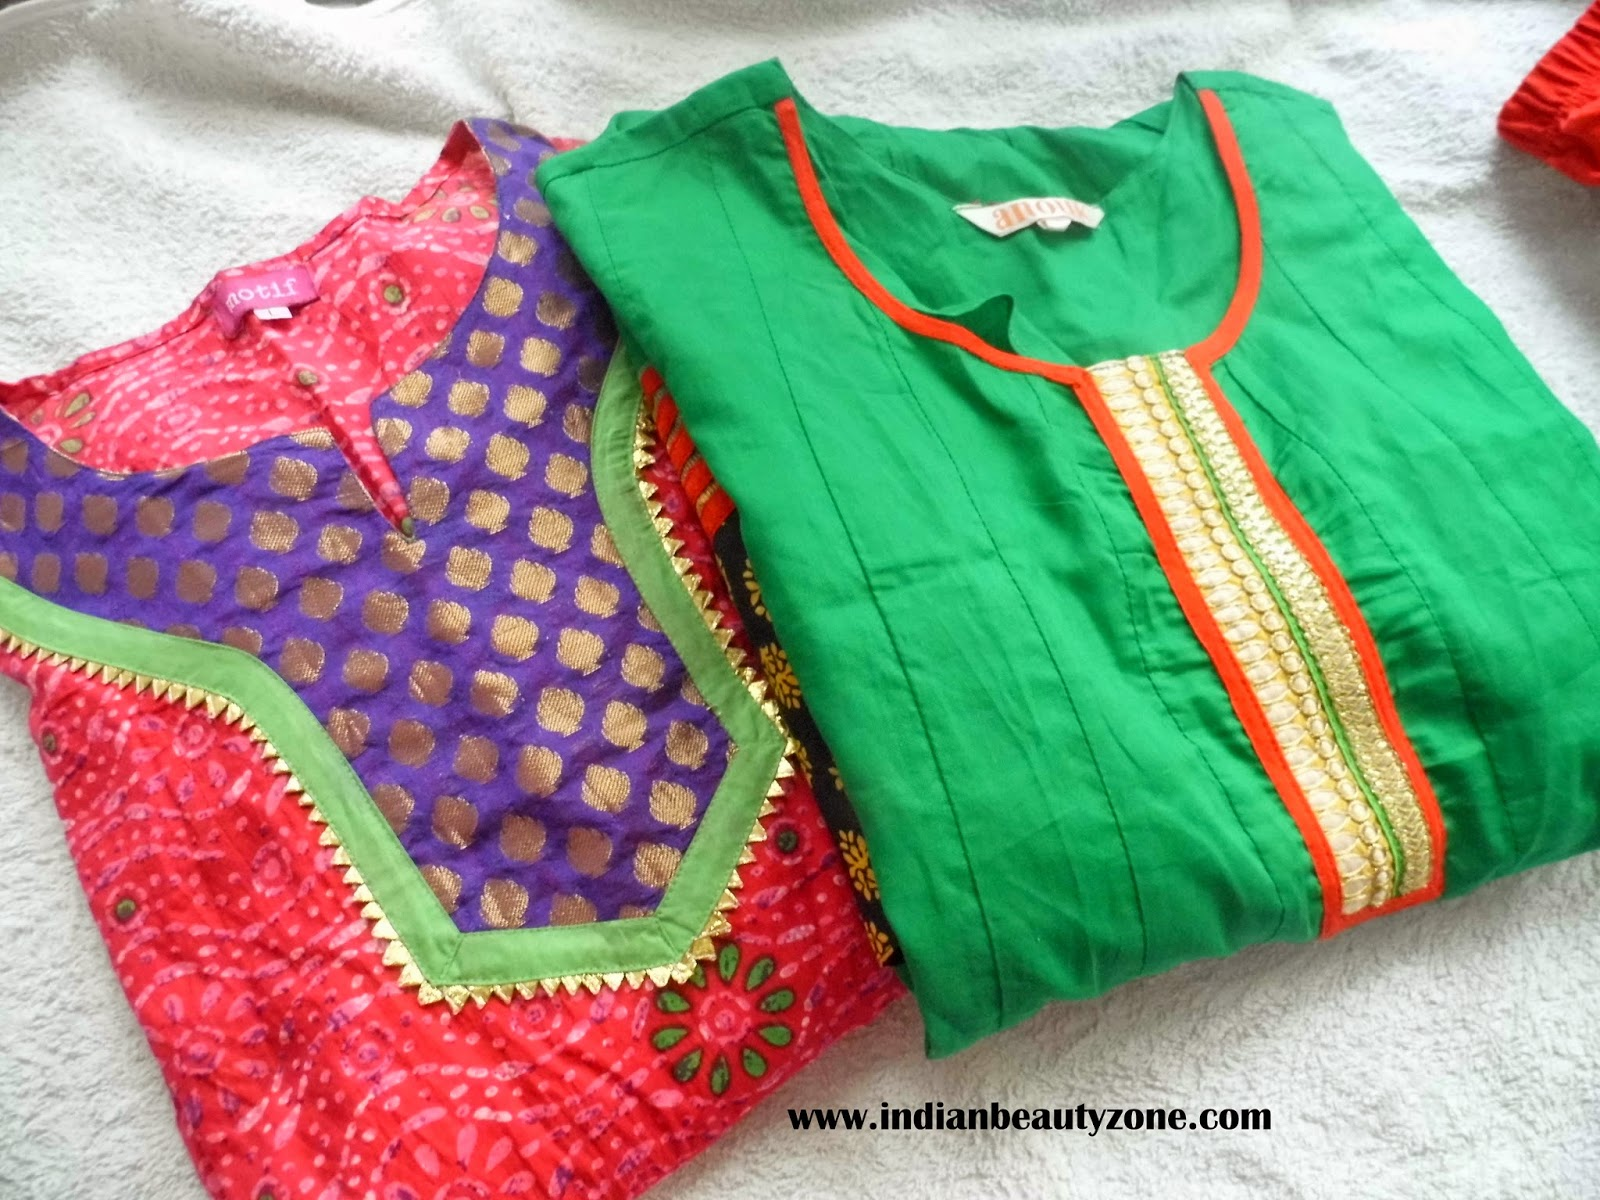 edf9345590 Indian Beauty Zone: My Anarkali Kurta and Leggings Clothing Haul ...